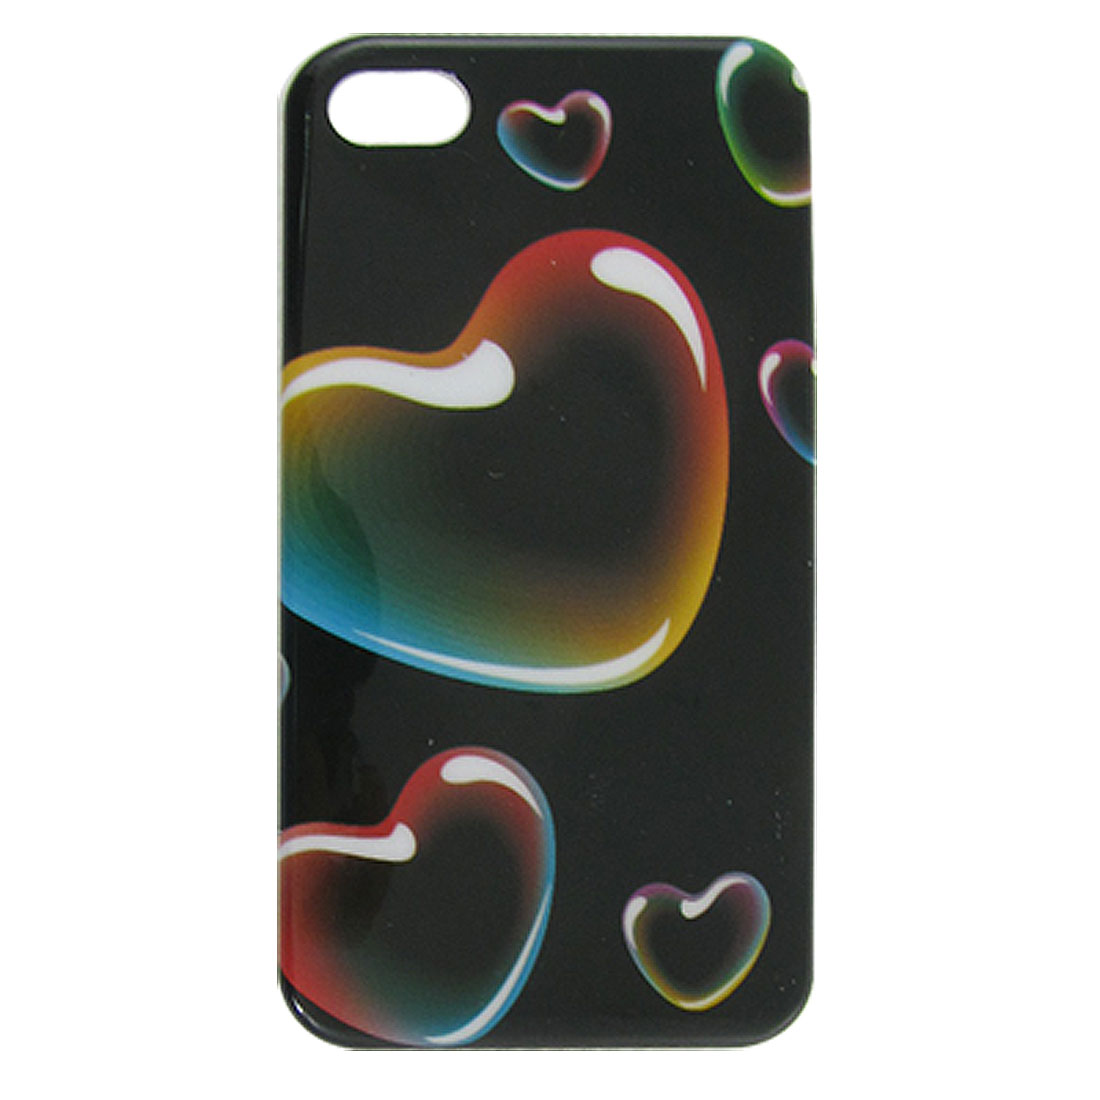 Colorful Heart Pattern IMD Back Case Cover Shell for iPhone 4 4G 4S